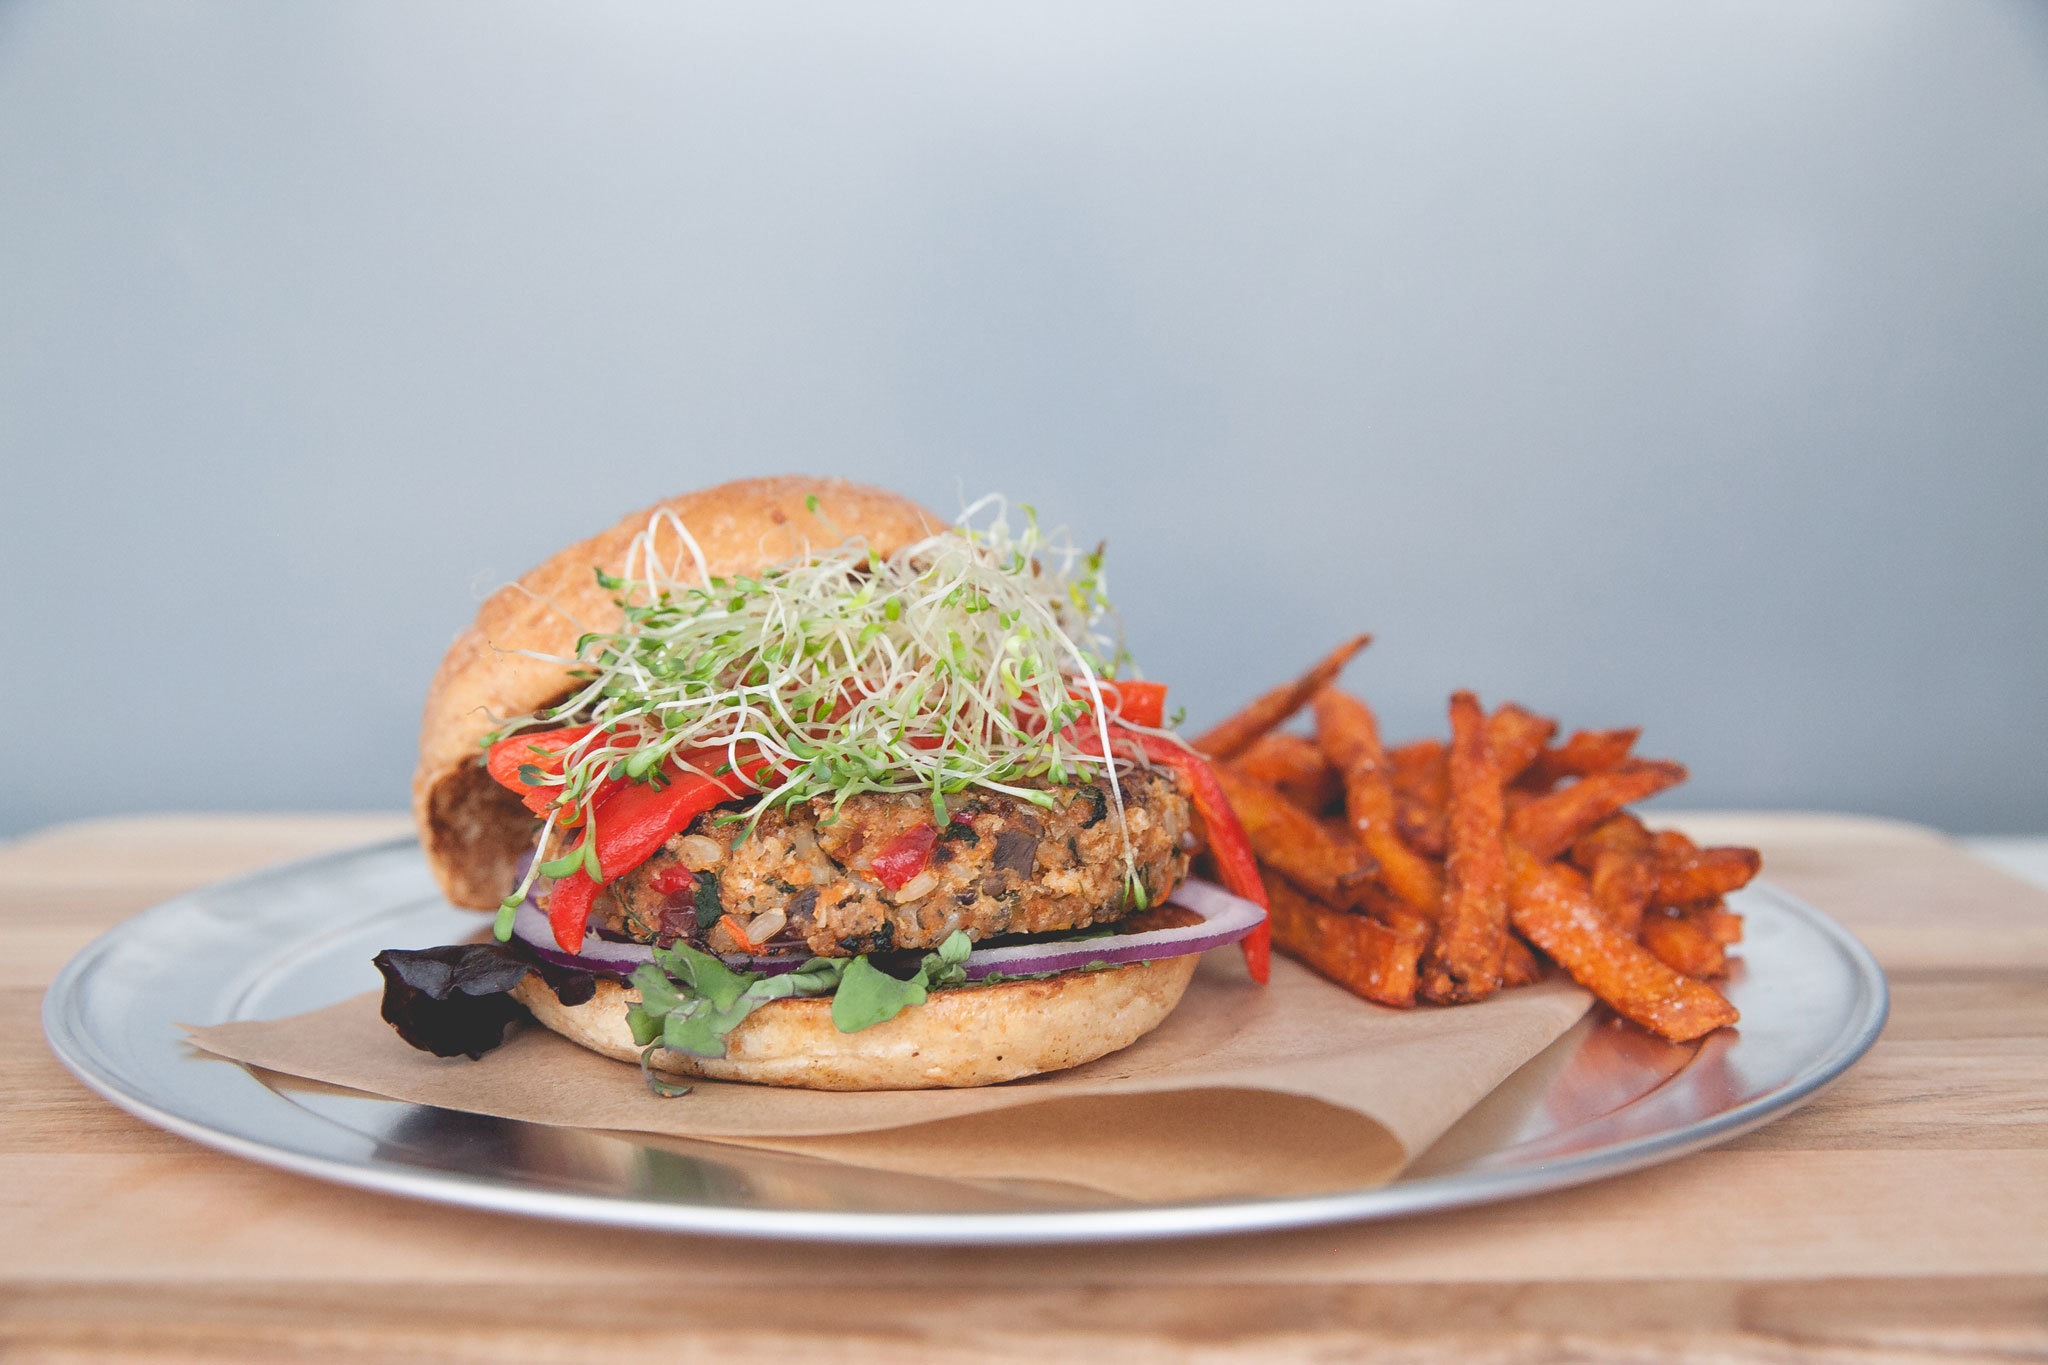 Veggie burger at The Counter